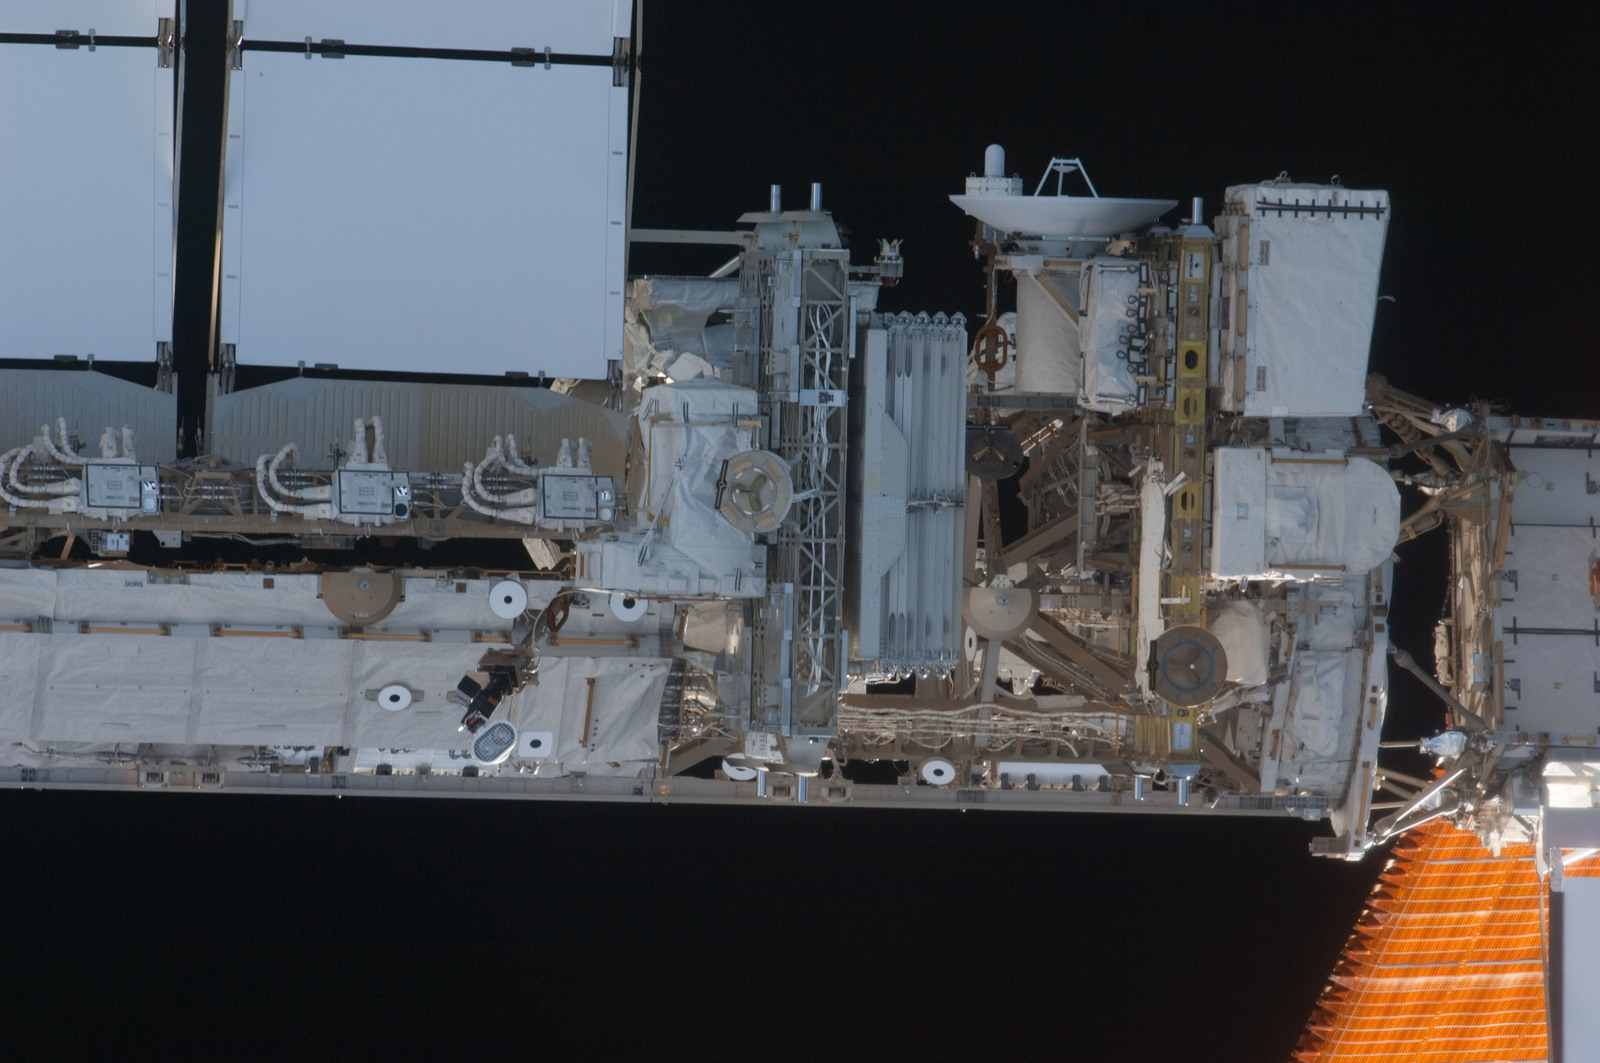 S135E006875 - STS-135 - Starboard Truss Segments during STS-135 Approach